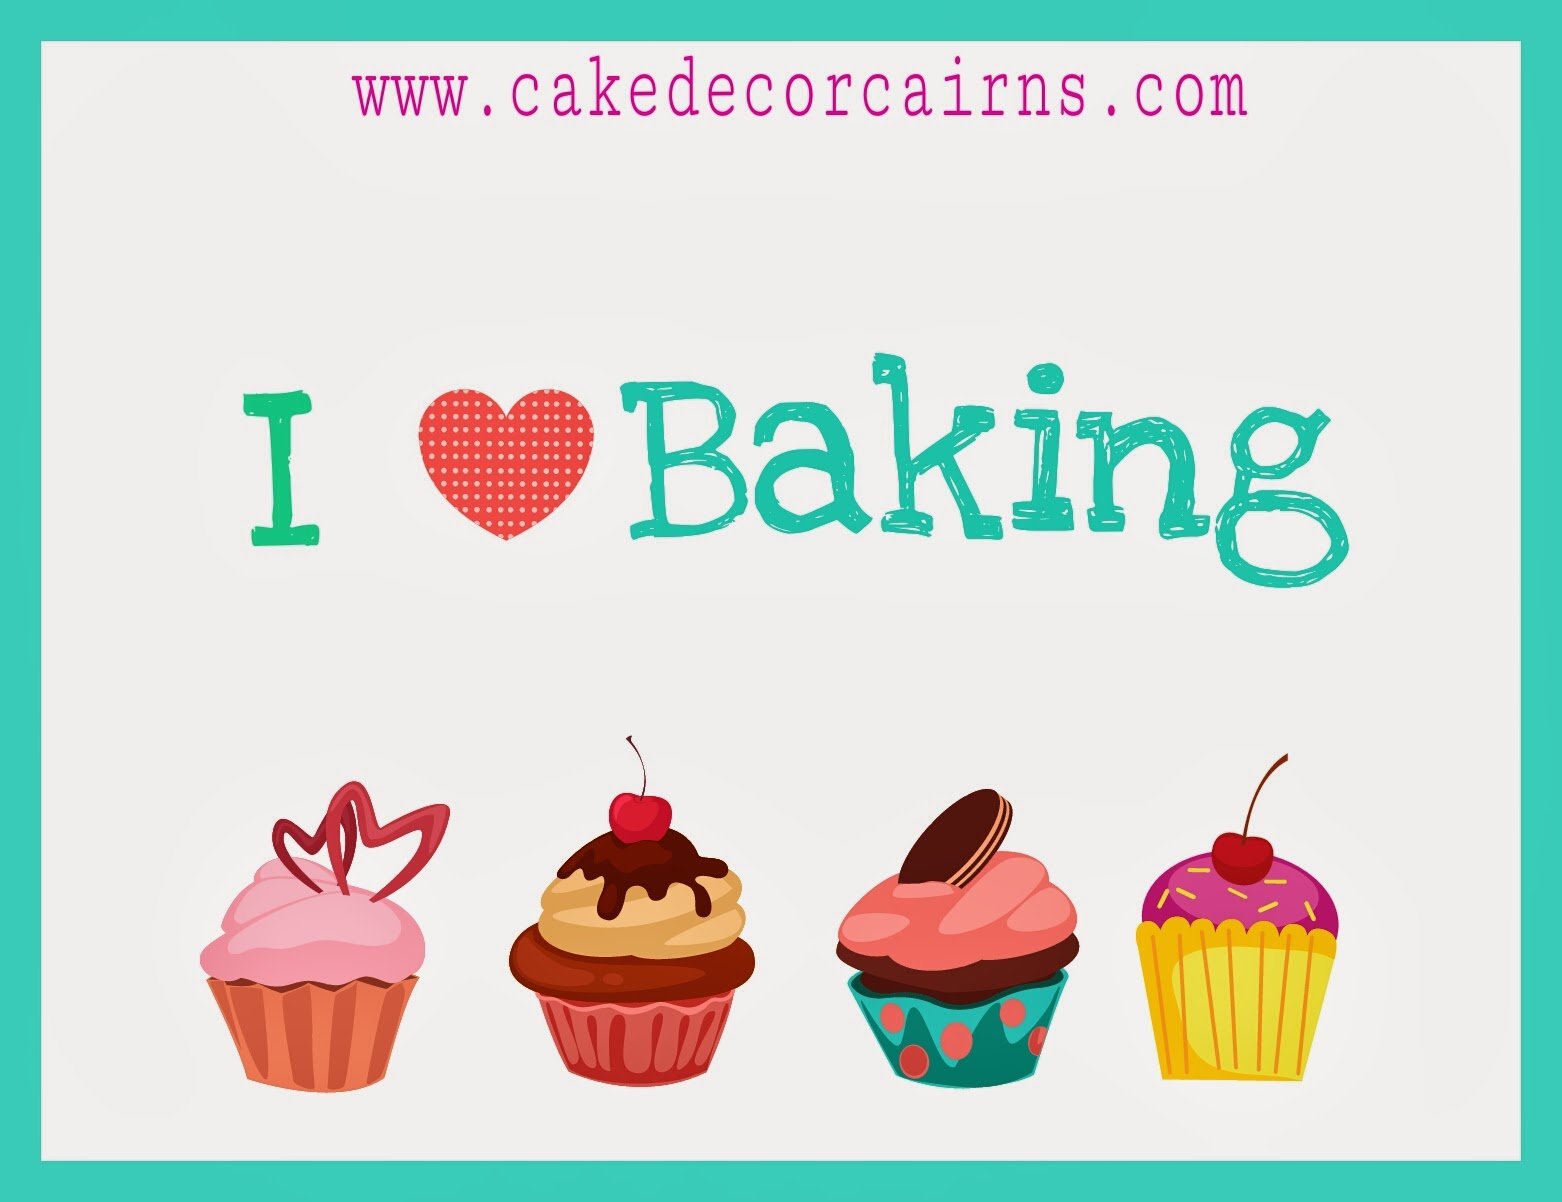 Decor in cairns gallery. Baking clipart cake baking